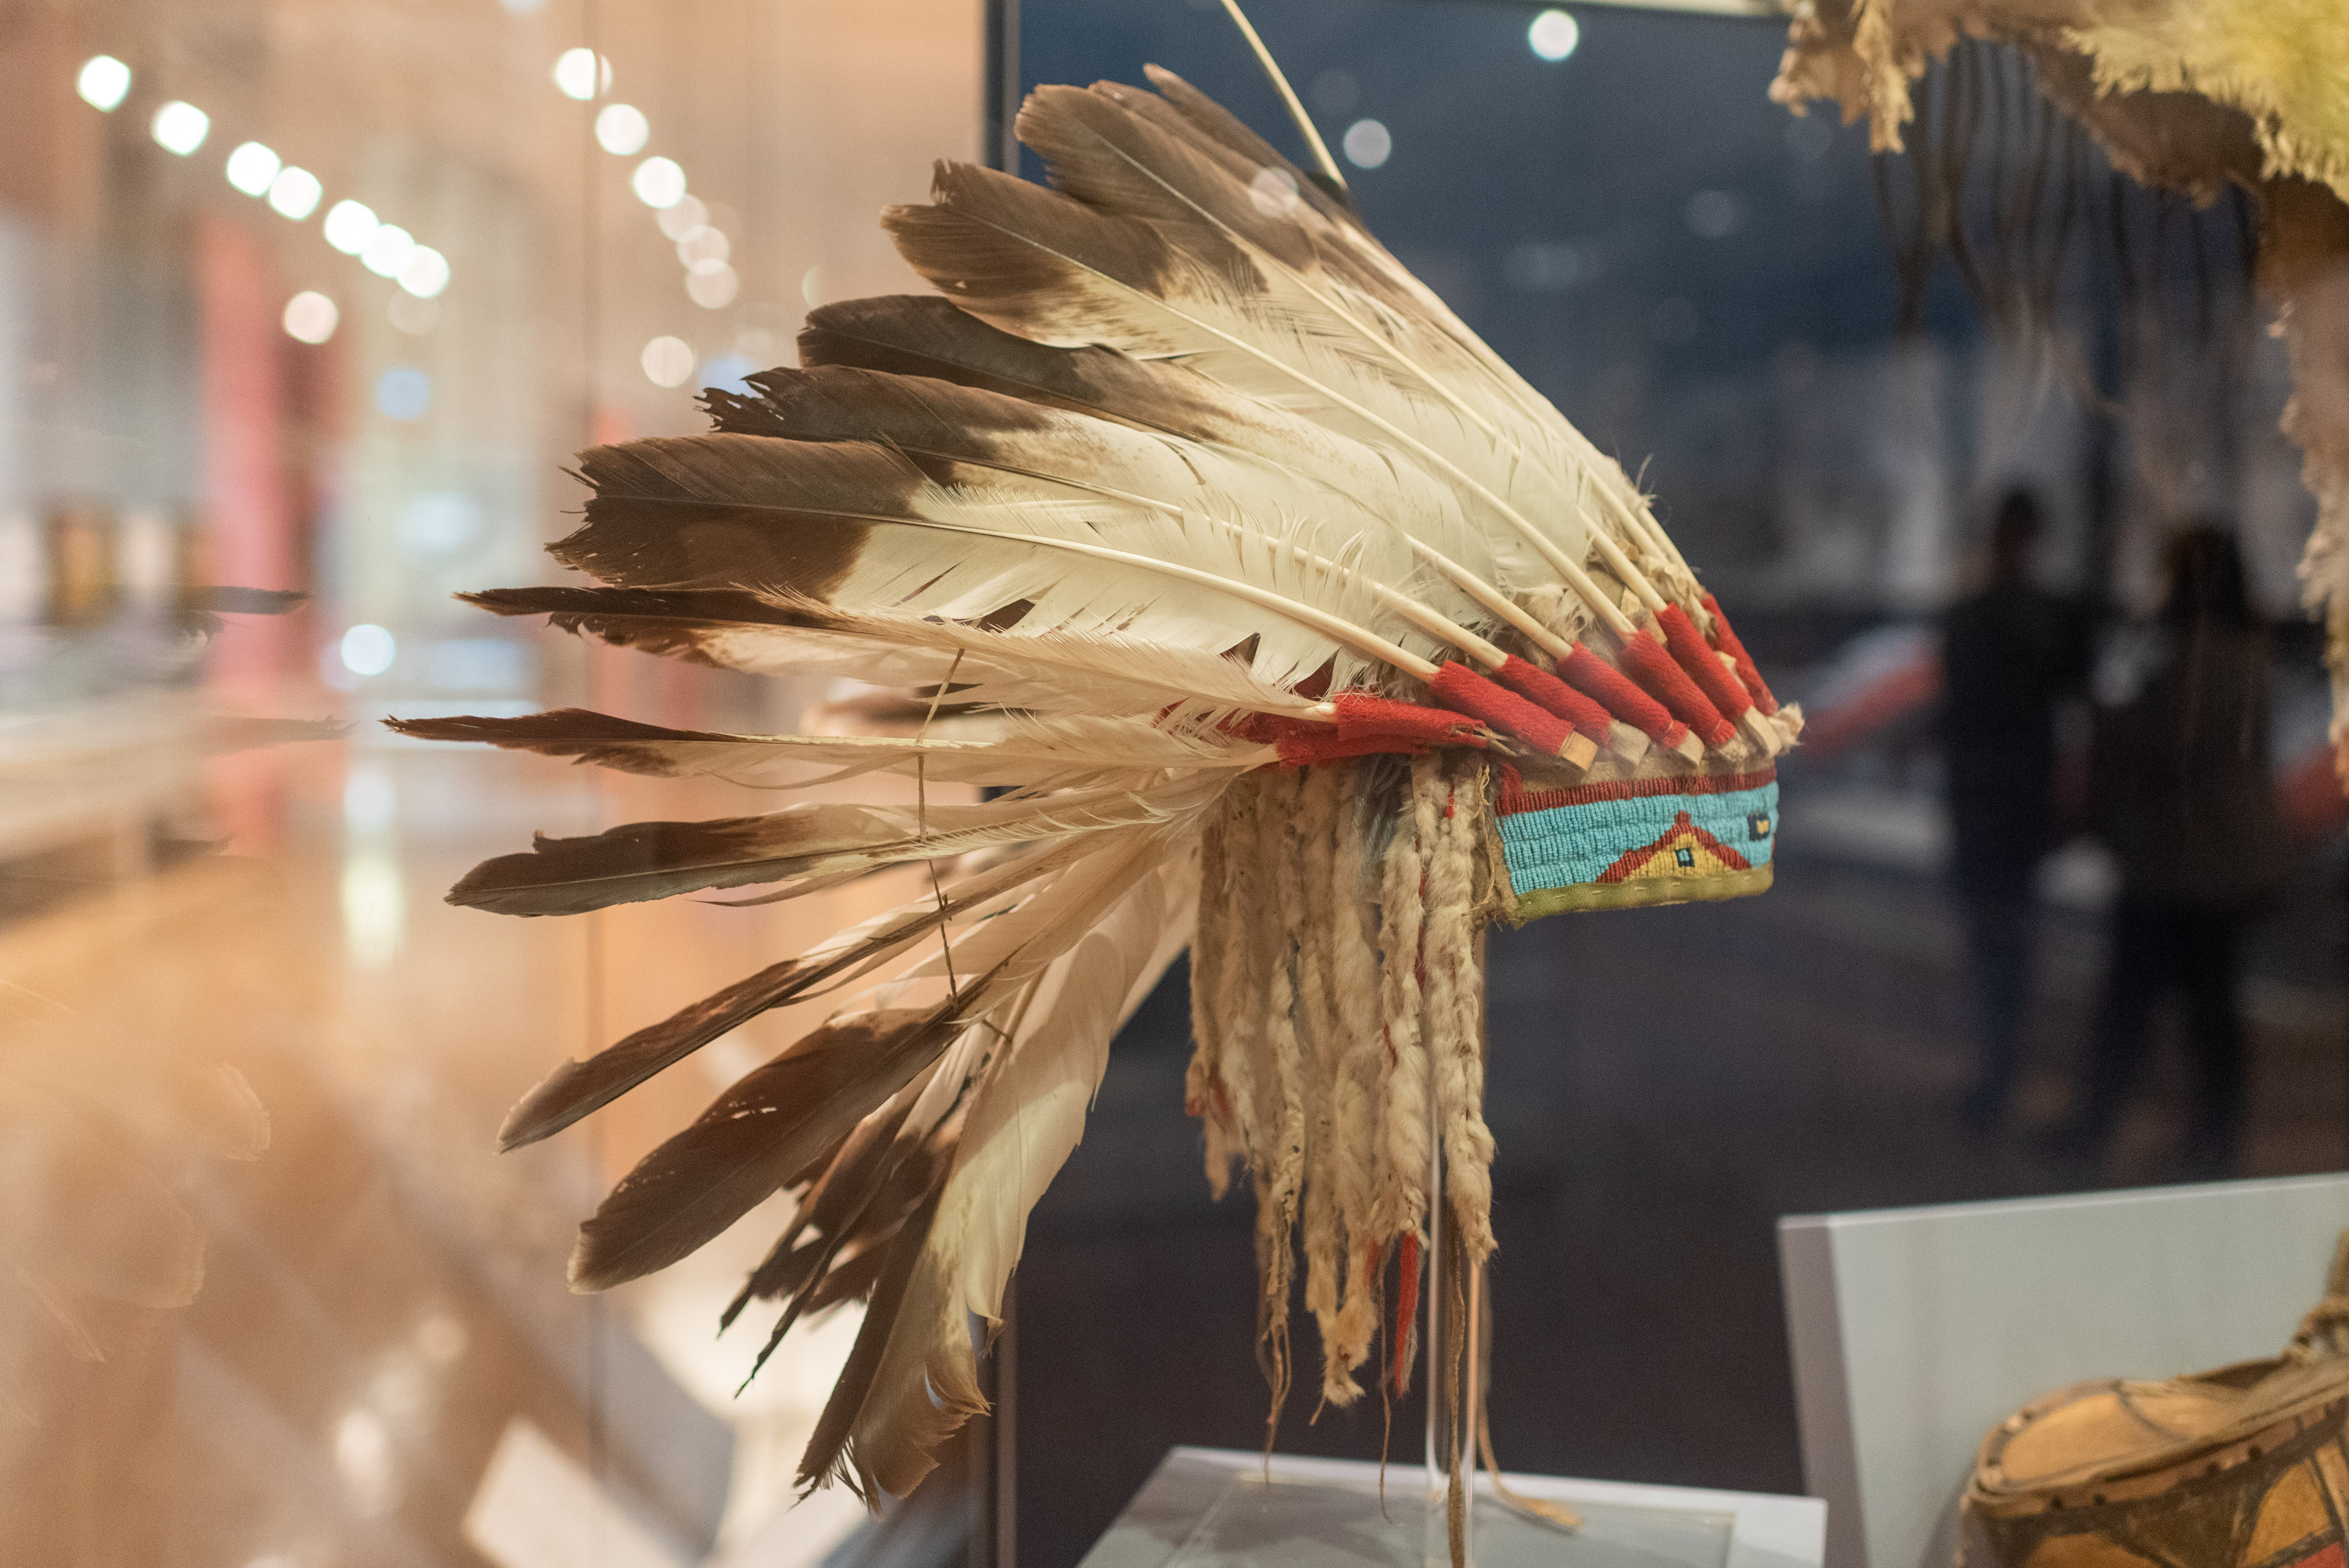 Gallery dedicated to First Peoples art & culture,  featuring more than one thousand works of art and cultural heritage.